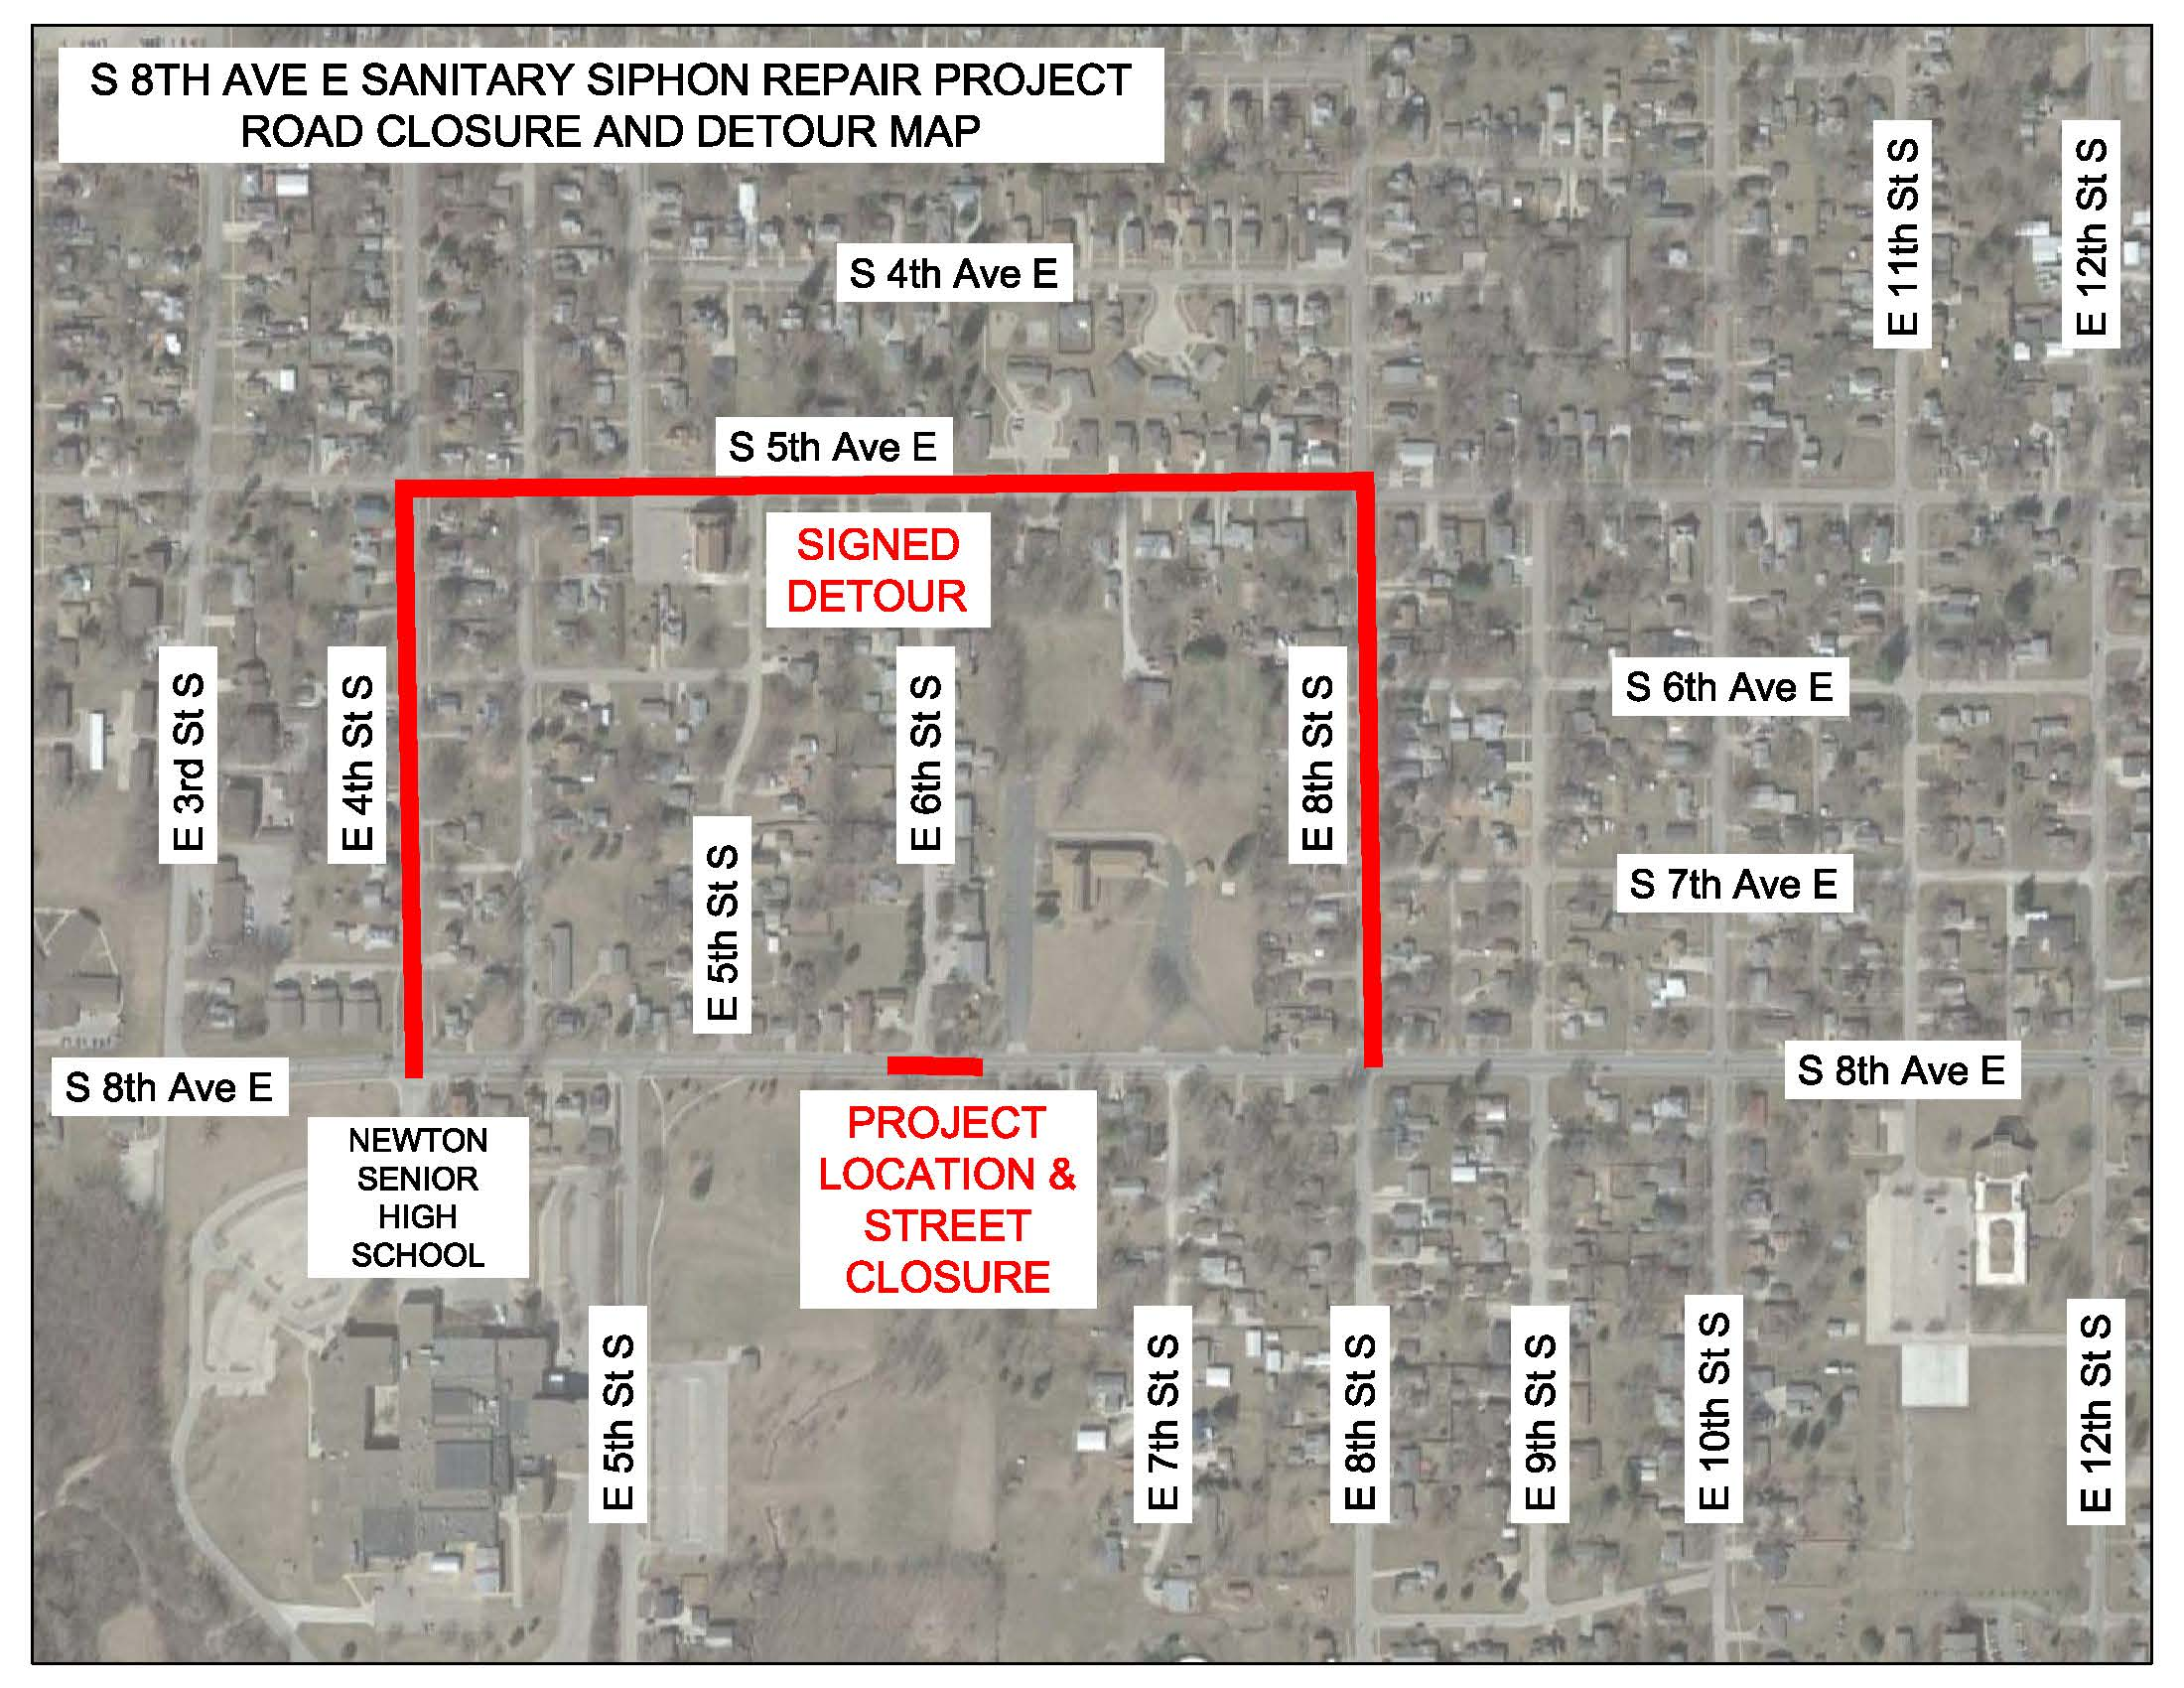 Siphon Repair Road Closure and Detour Map